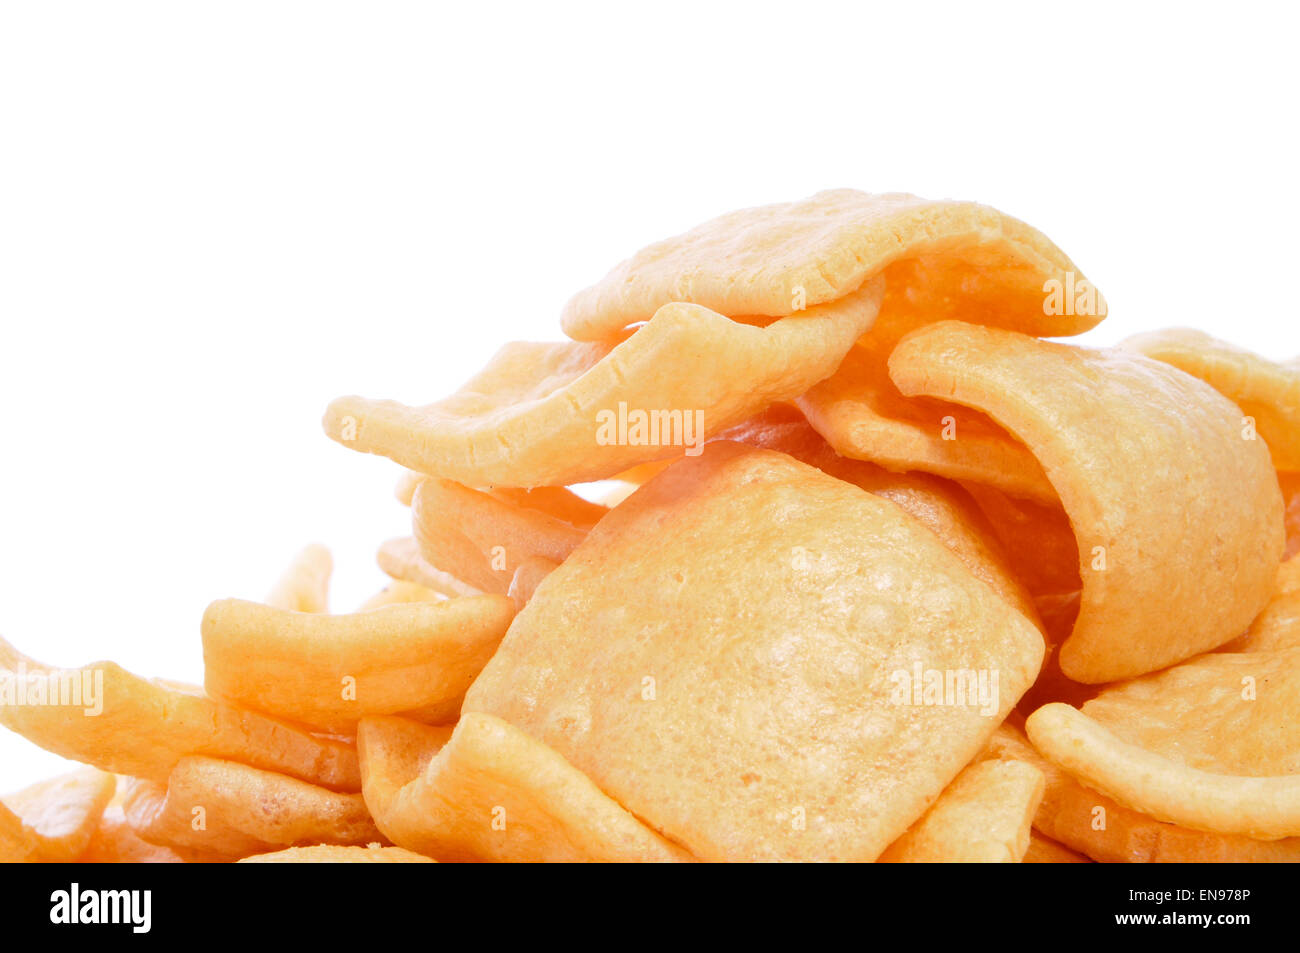 a pile of wheat snacks on a white background - Stock Image